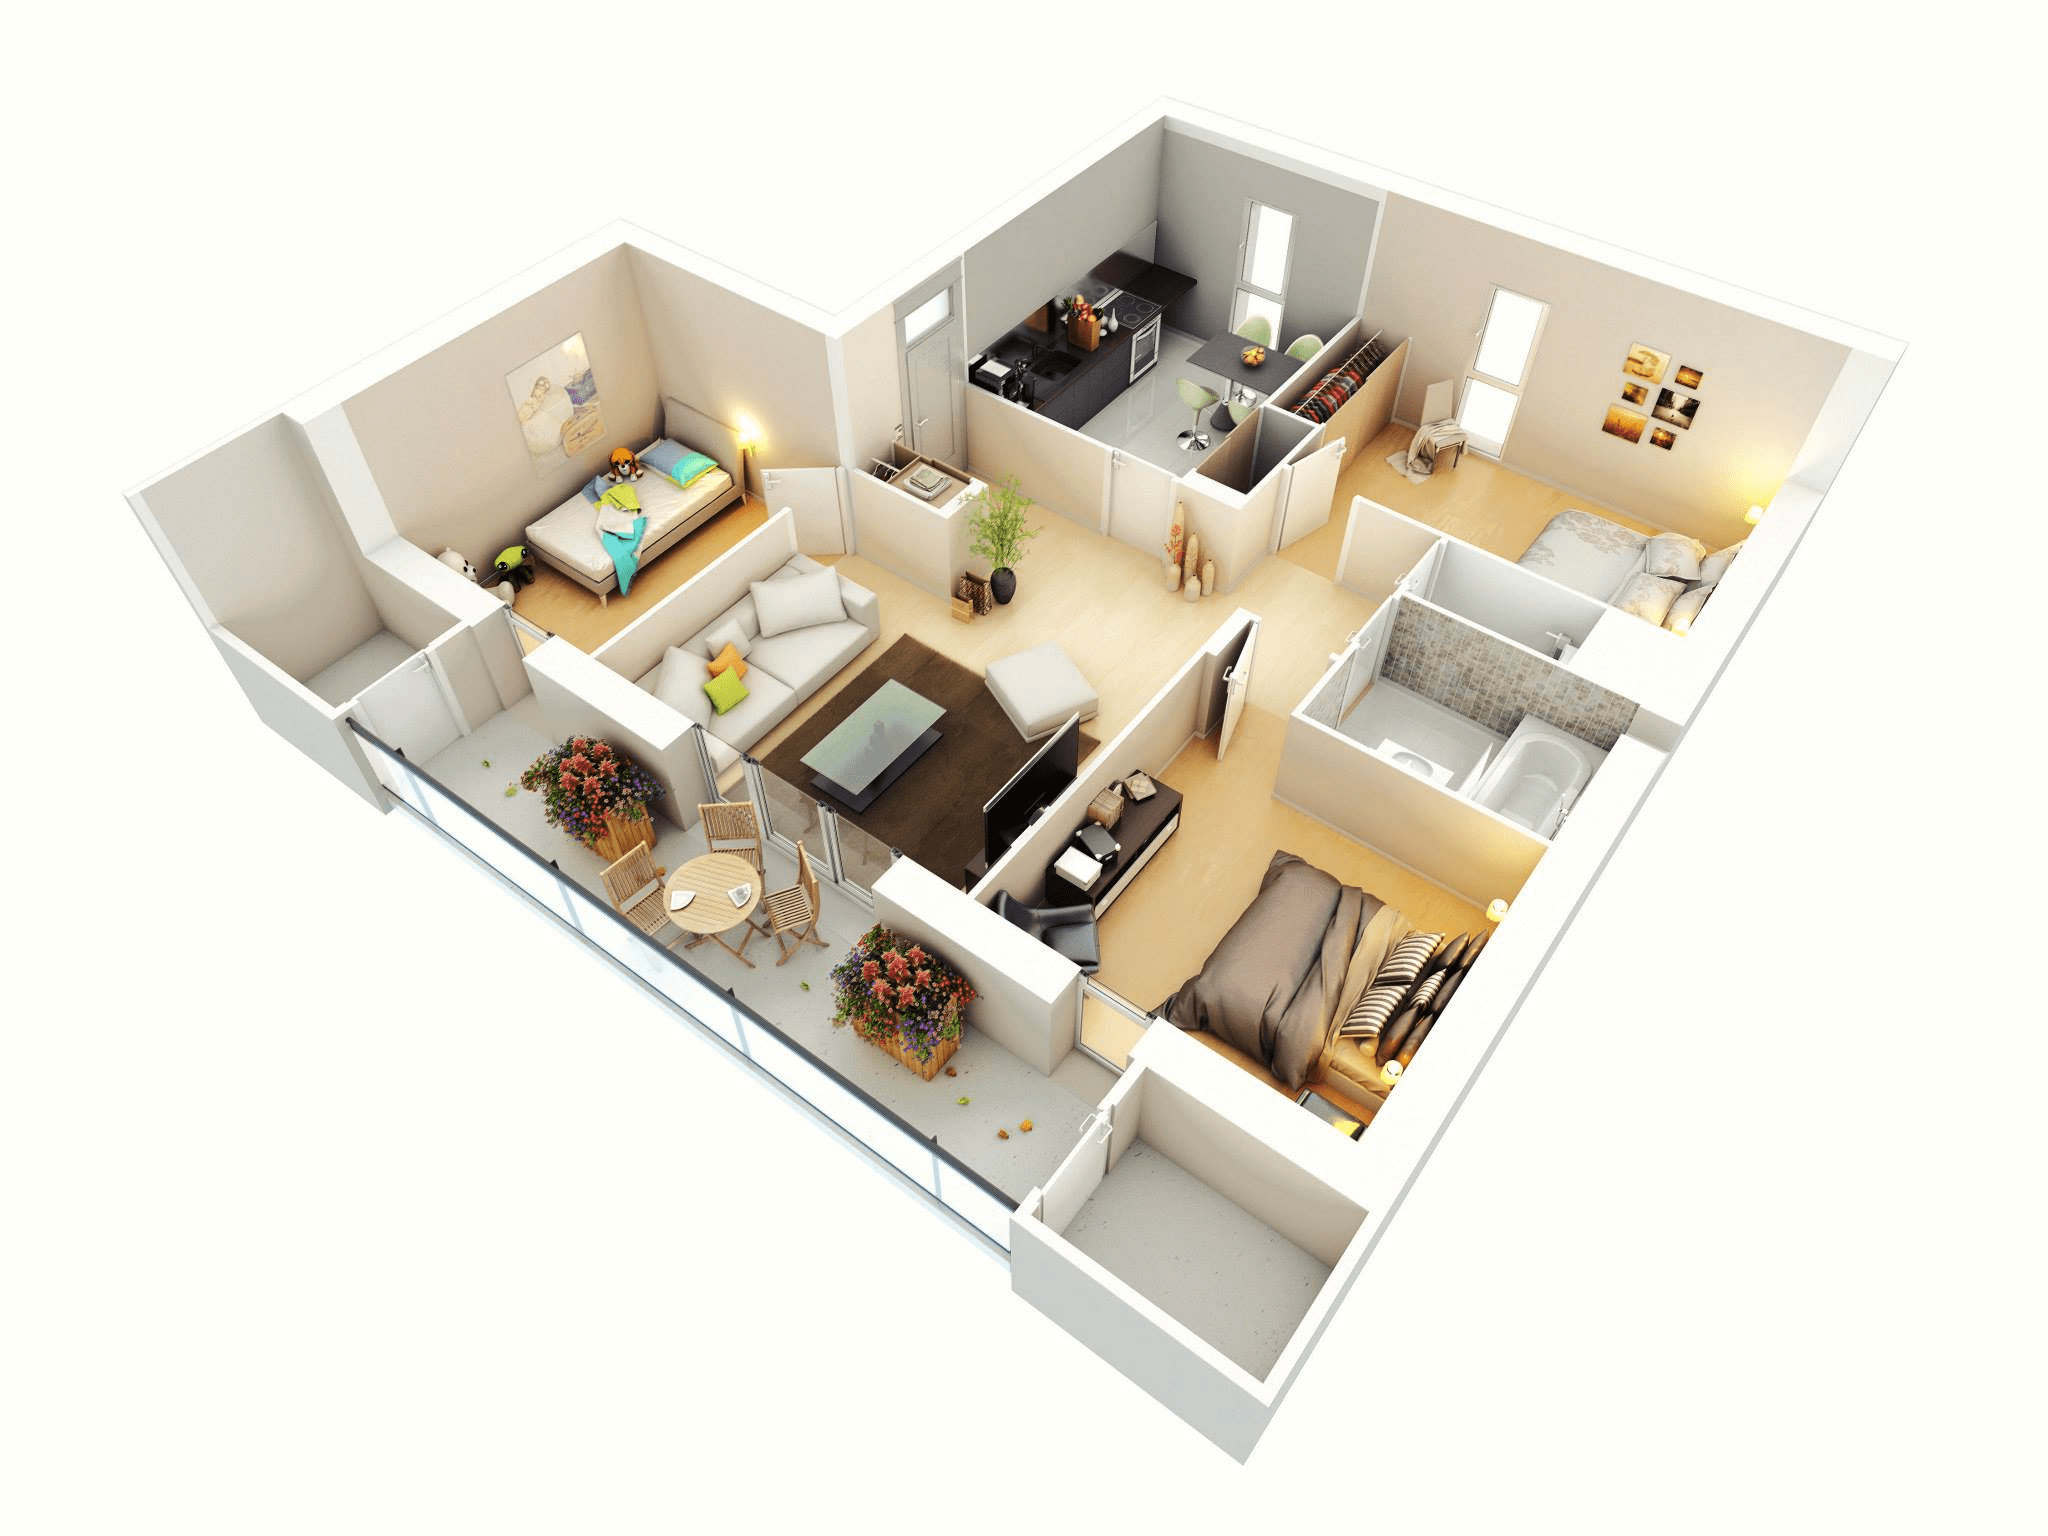 3d three bedroom house layout design plans 23034 for 3 bedroom design